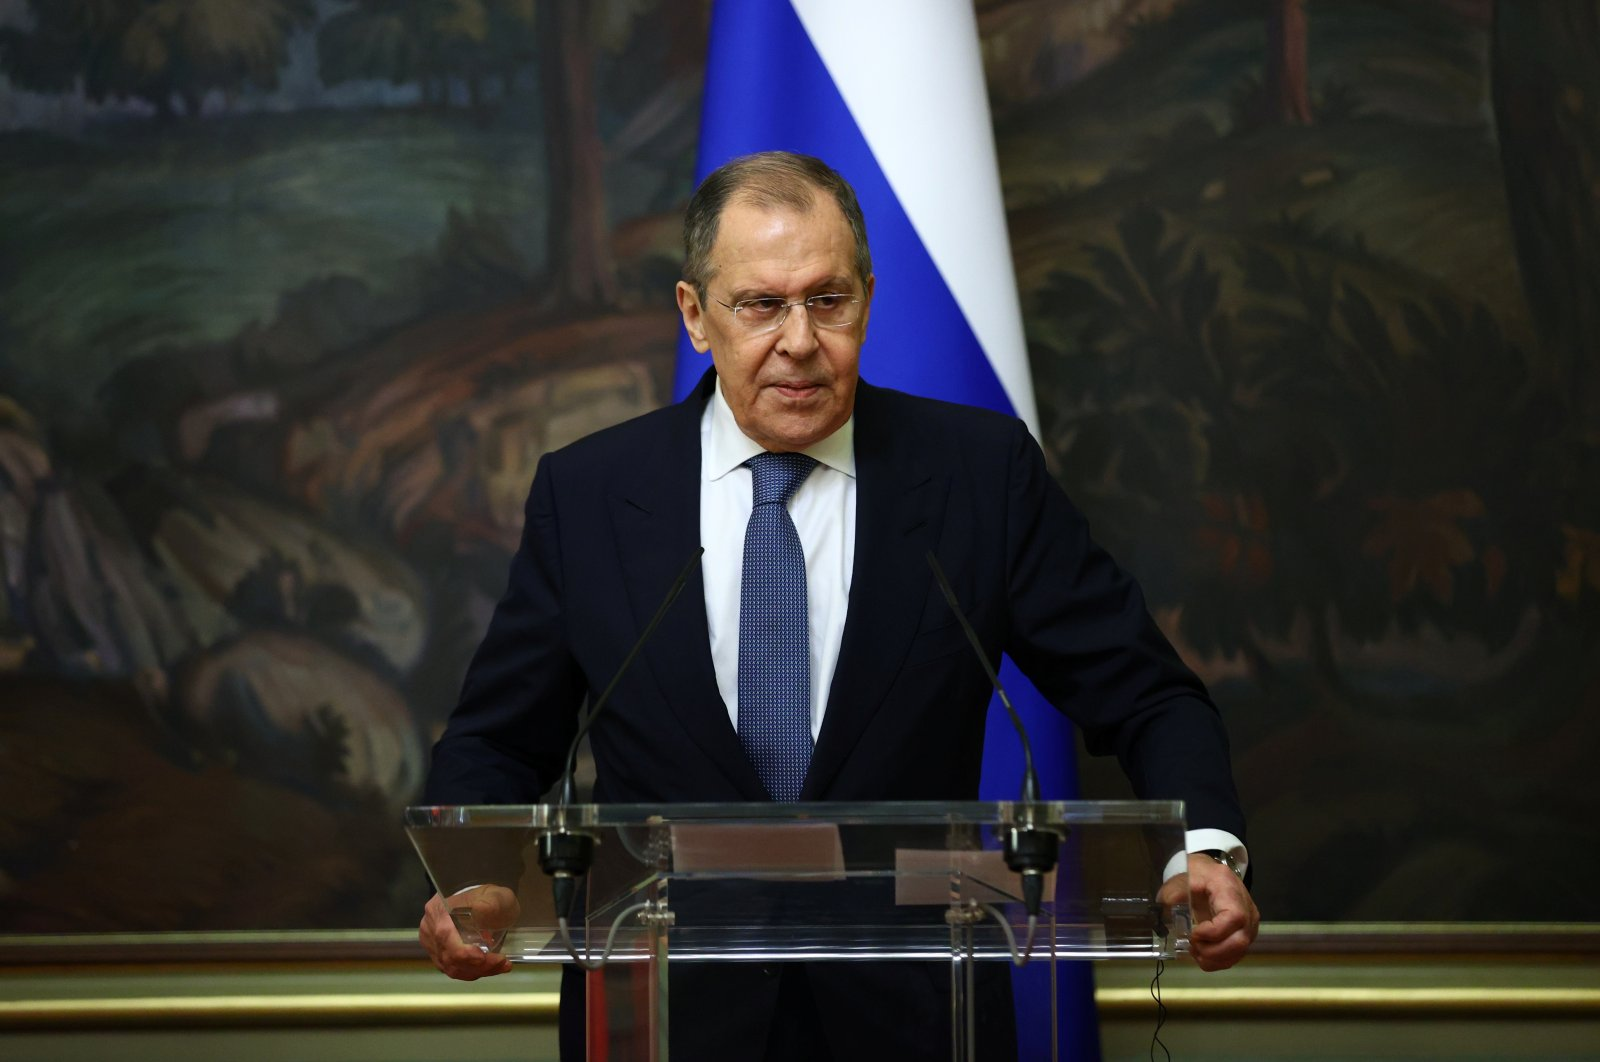 Russian Foreign Minister Sergei Lavrov speaks during a joint news conference with Italian Foreign Minister Luigi Di Maio (not pictured) in Moscow, Russia, Oct. 14, 2020. (Reuters Photo)